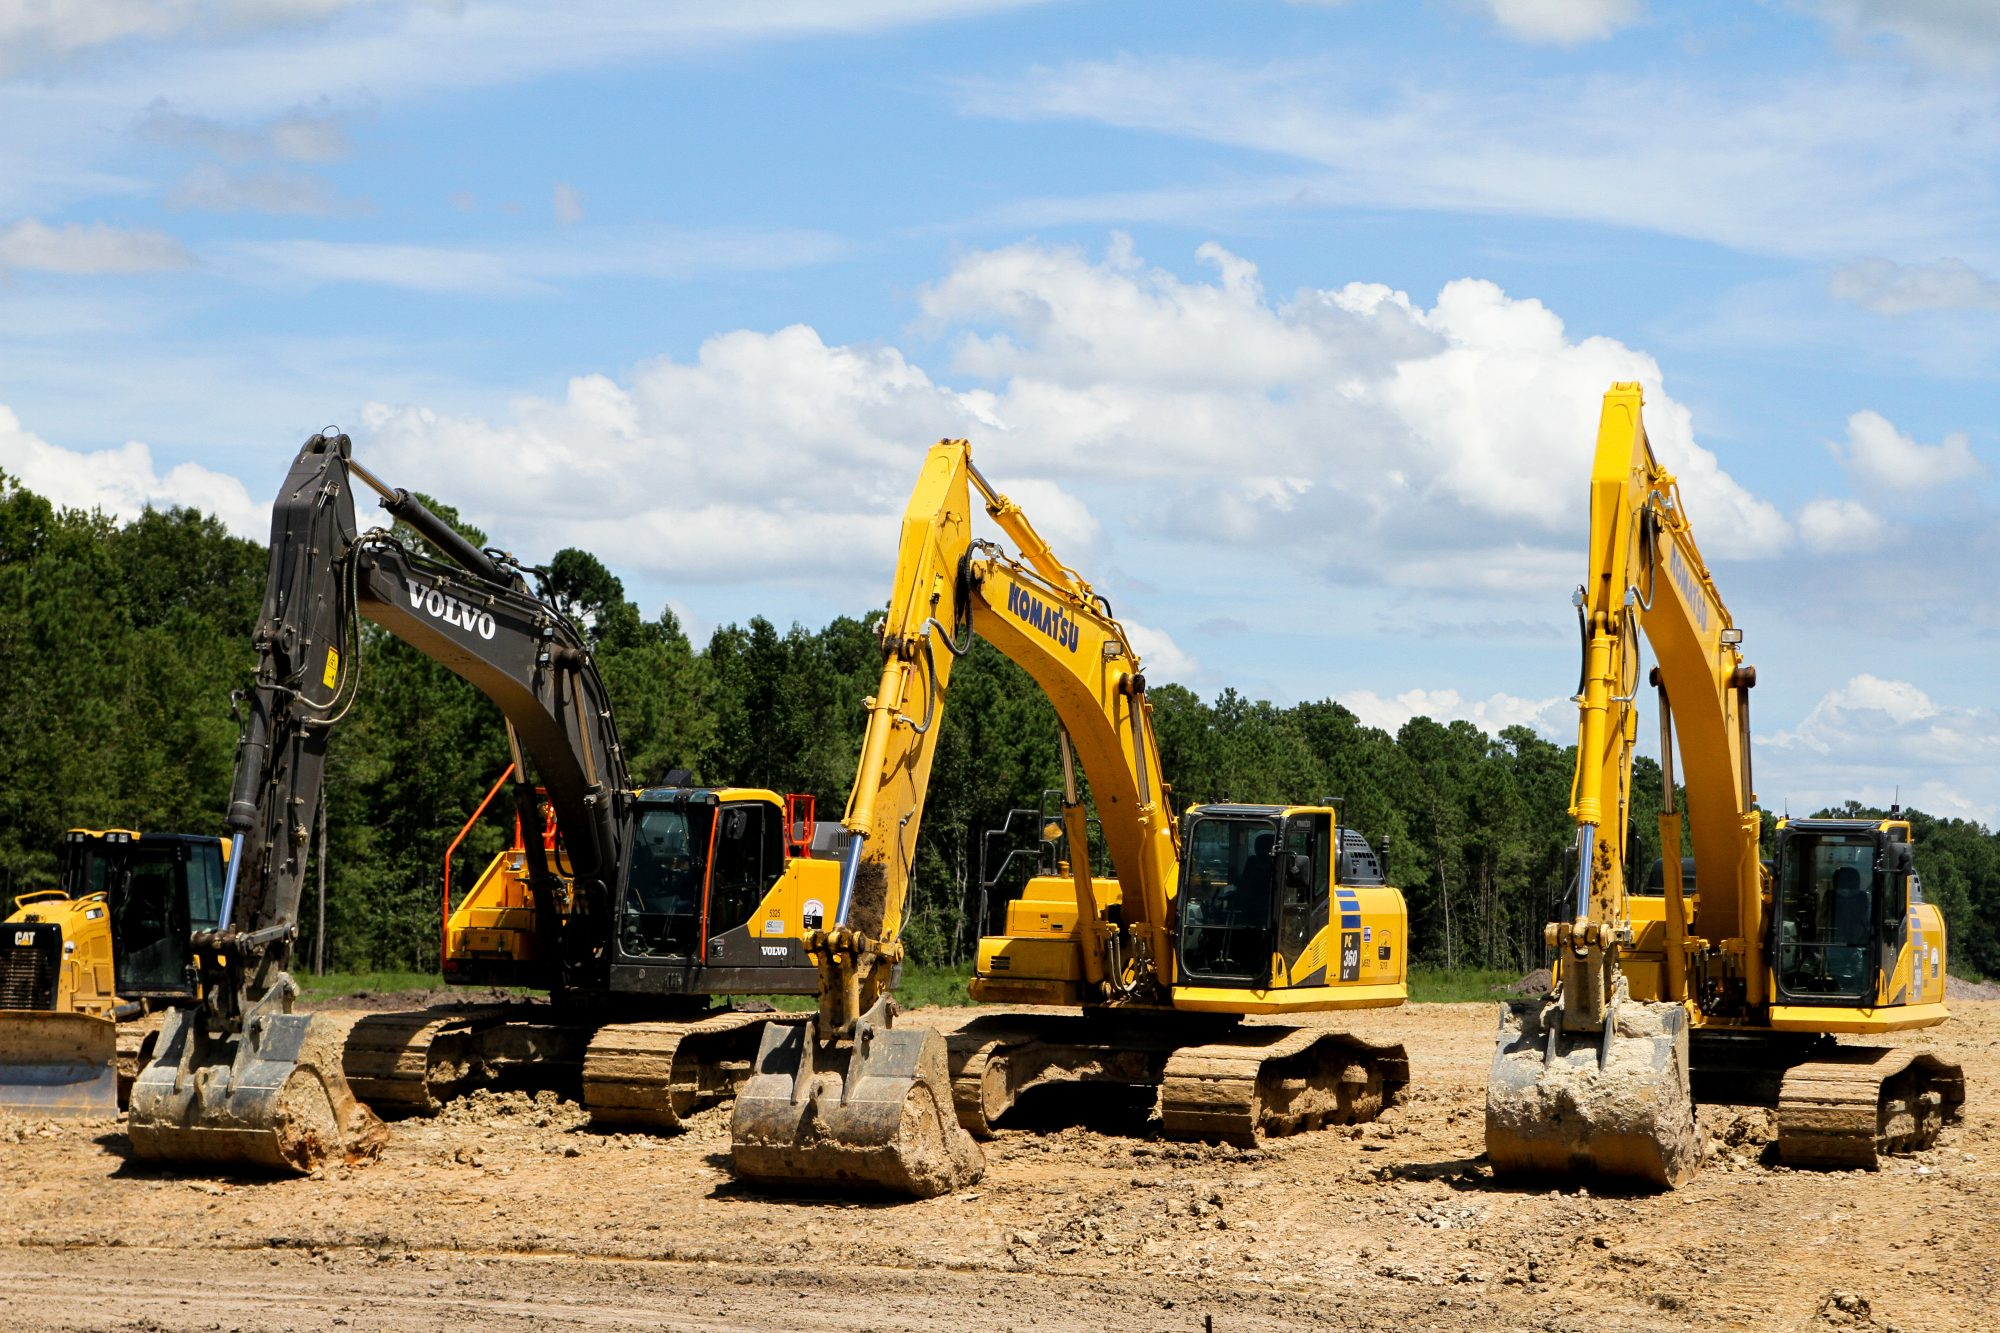 UK construction equipment sales continue steady growth